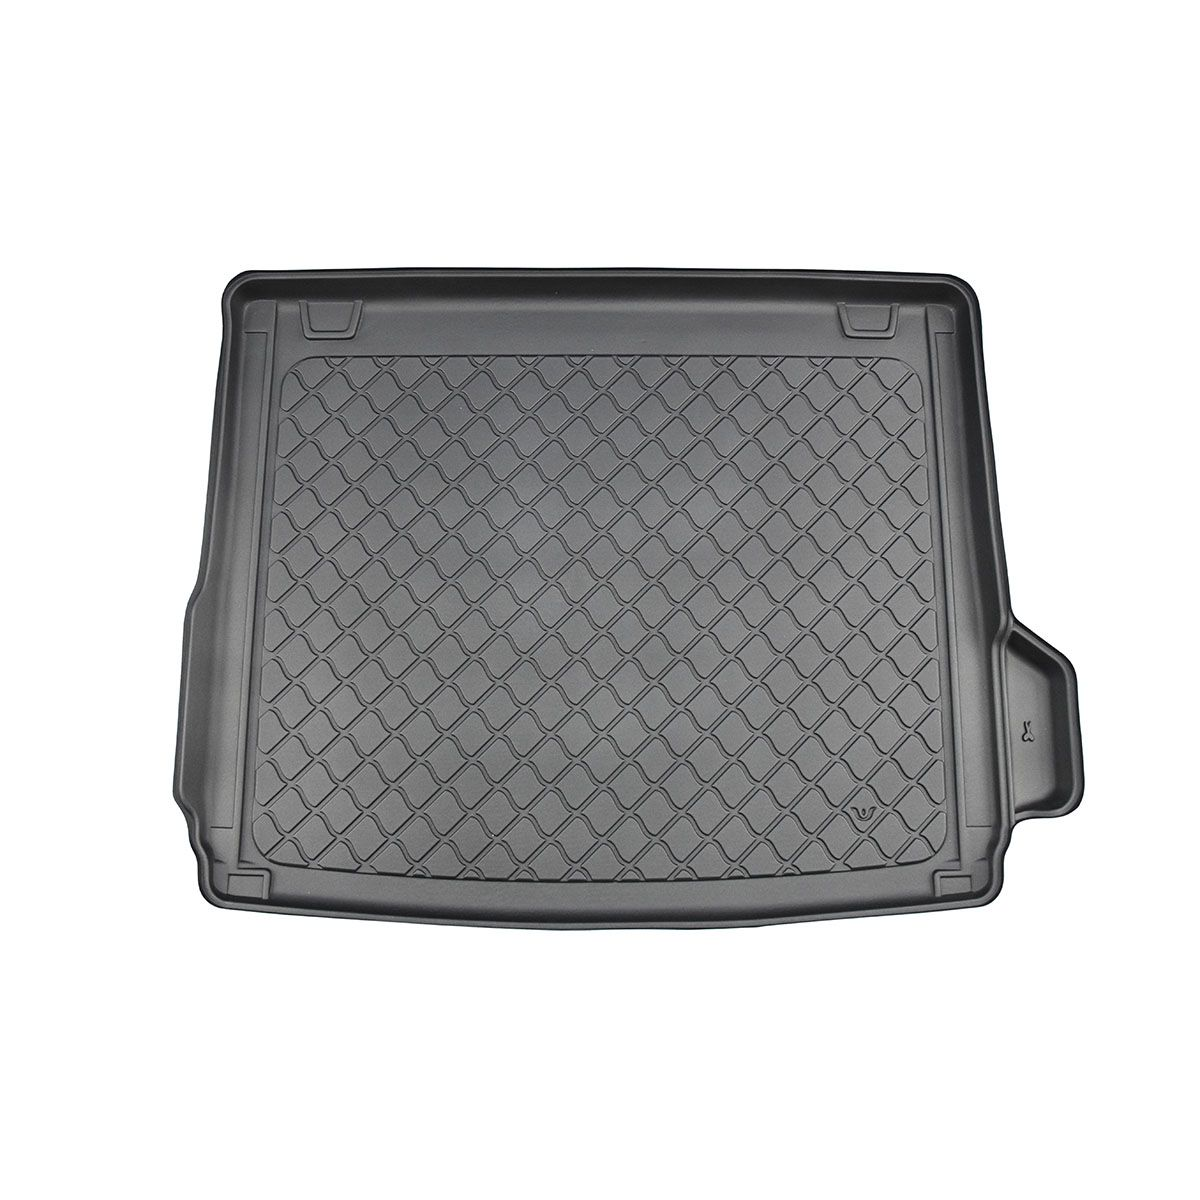 BMW X3 2018 - Onwards (G01) Moulded Boot Mat product image